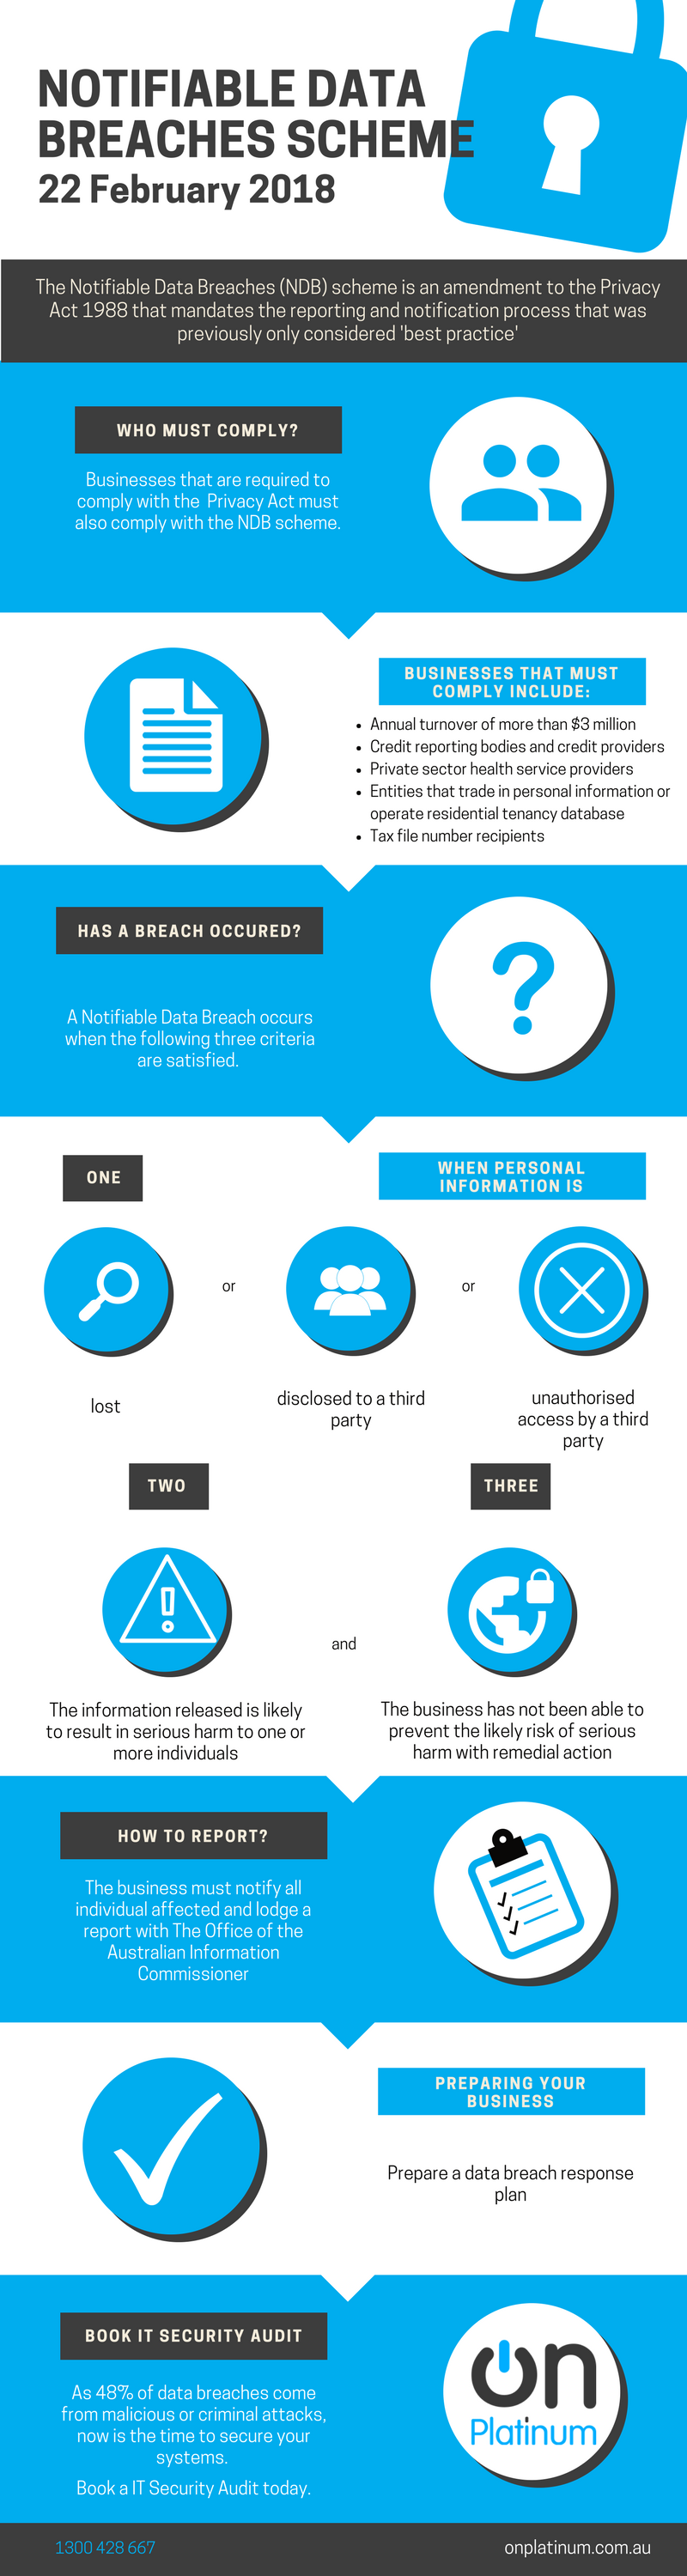 Notifiable Data Breach Scheme - What You Need to Know - Infographic